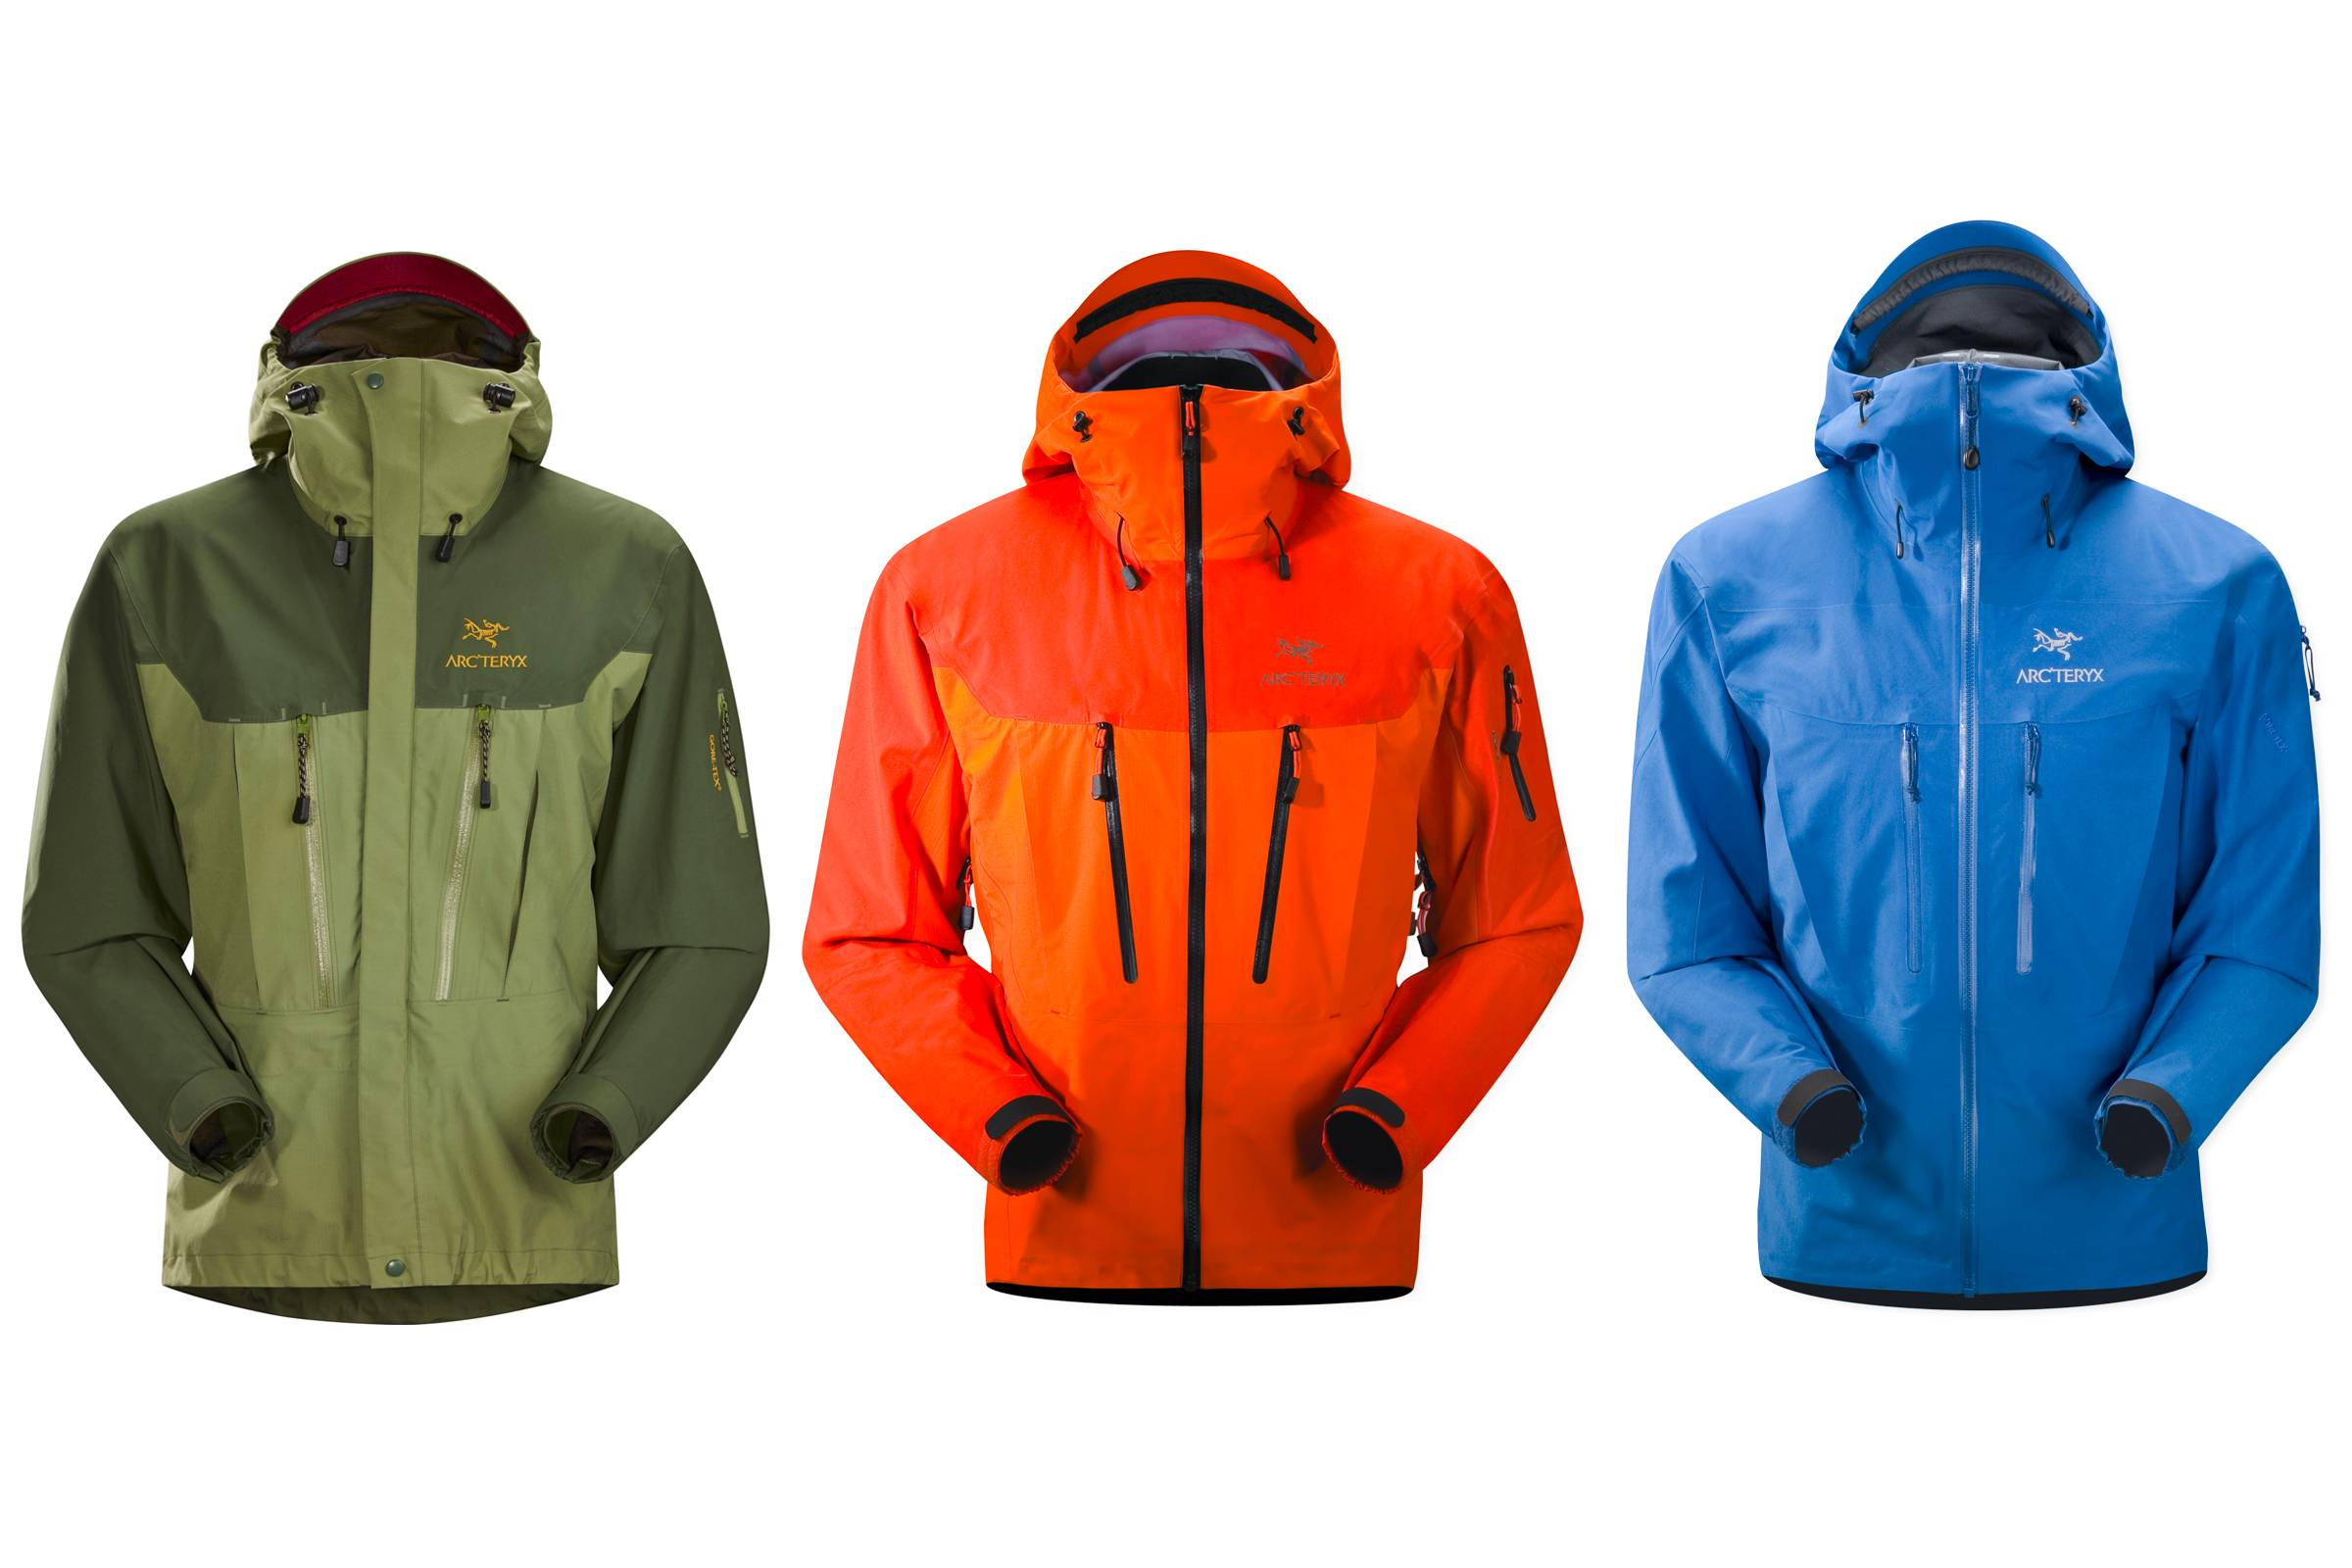 Arc'teryx Alpha SV Releases and Evolution